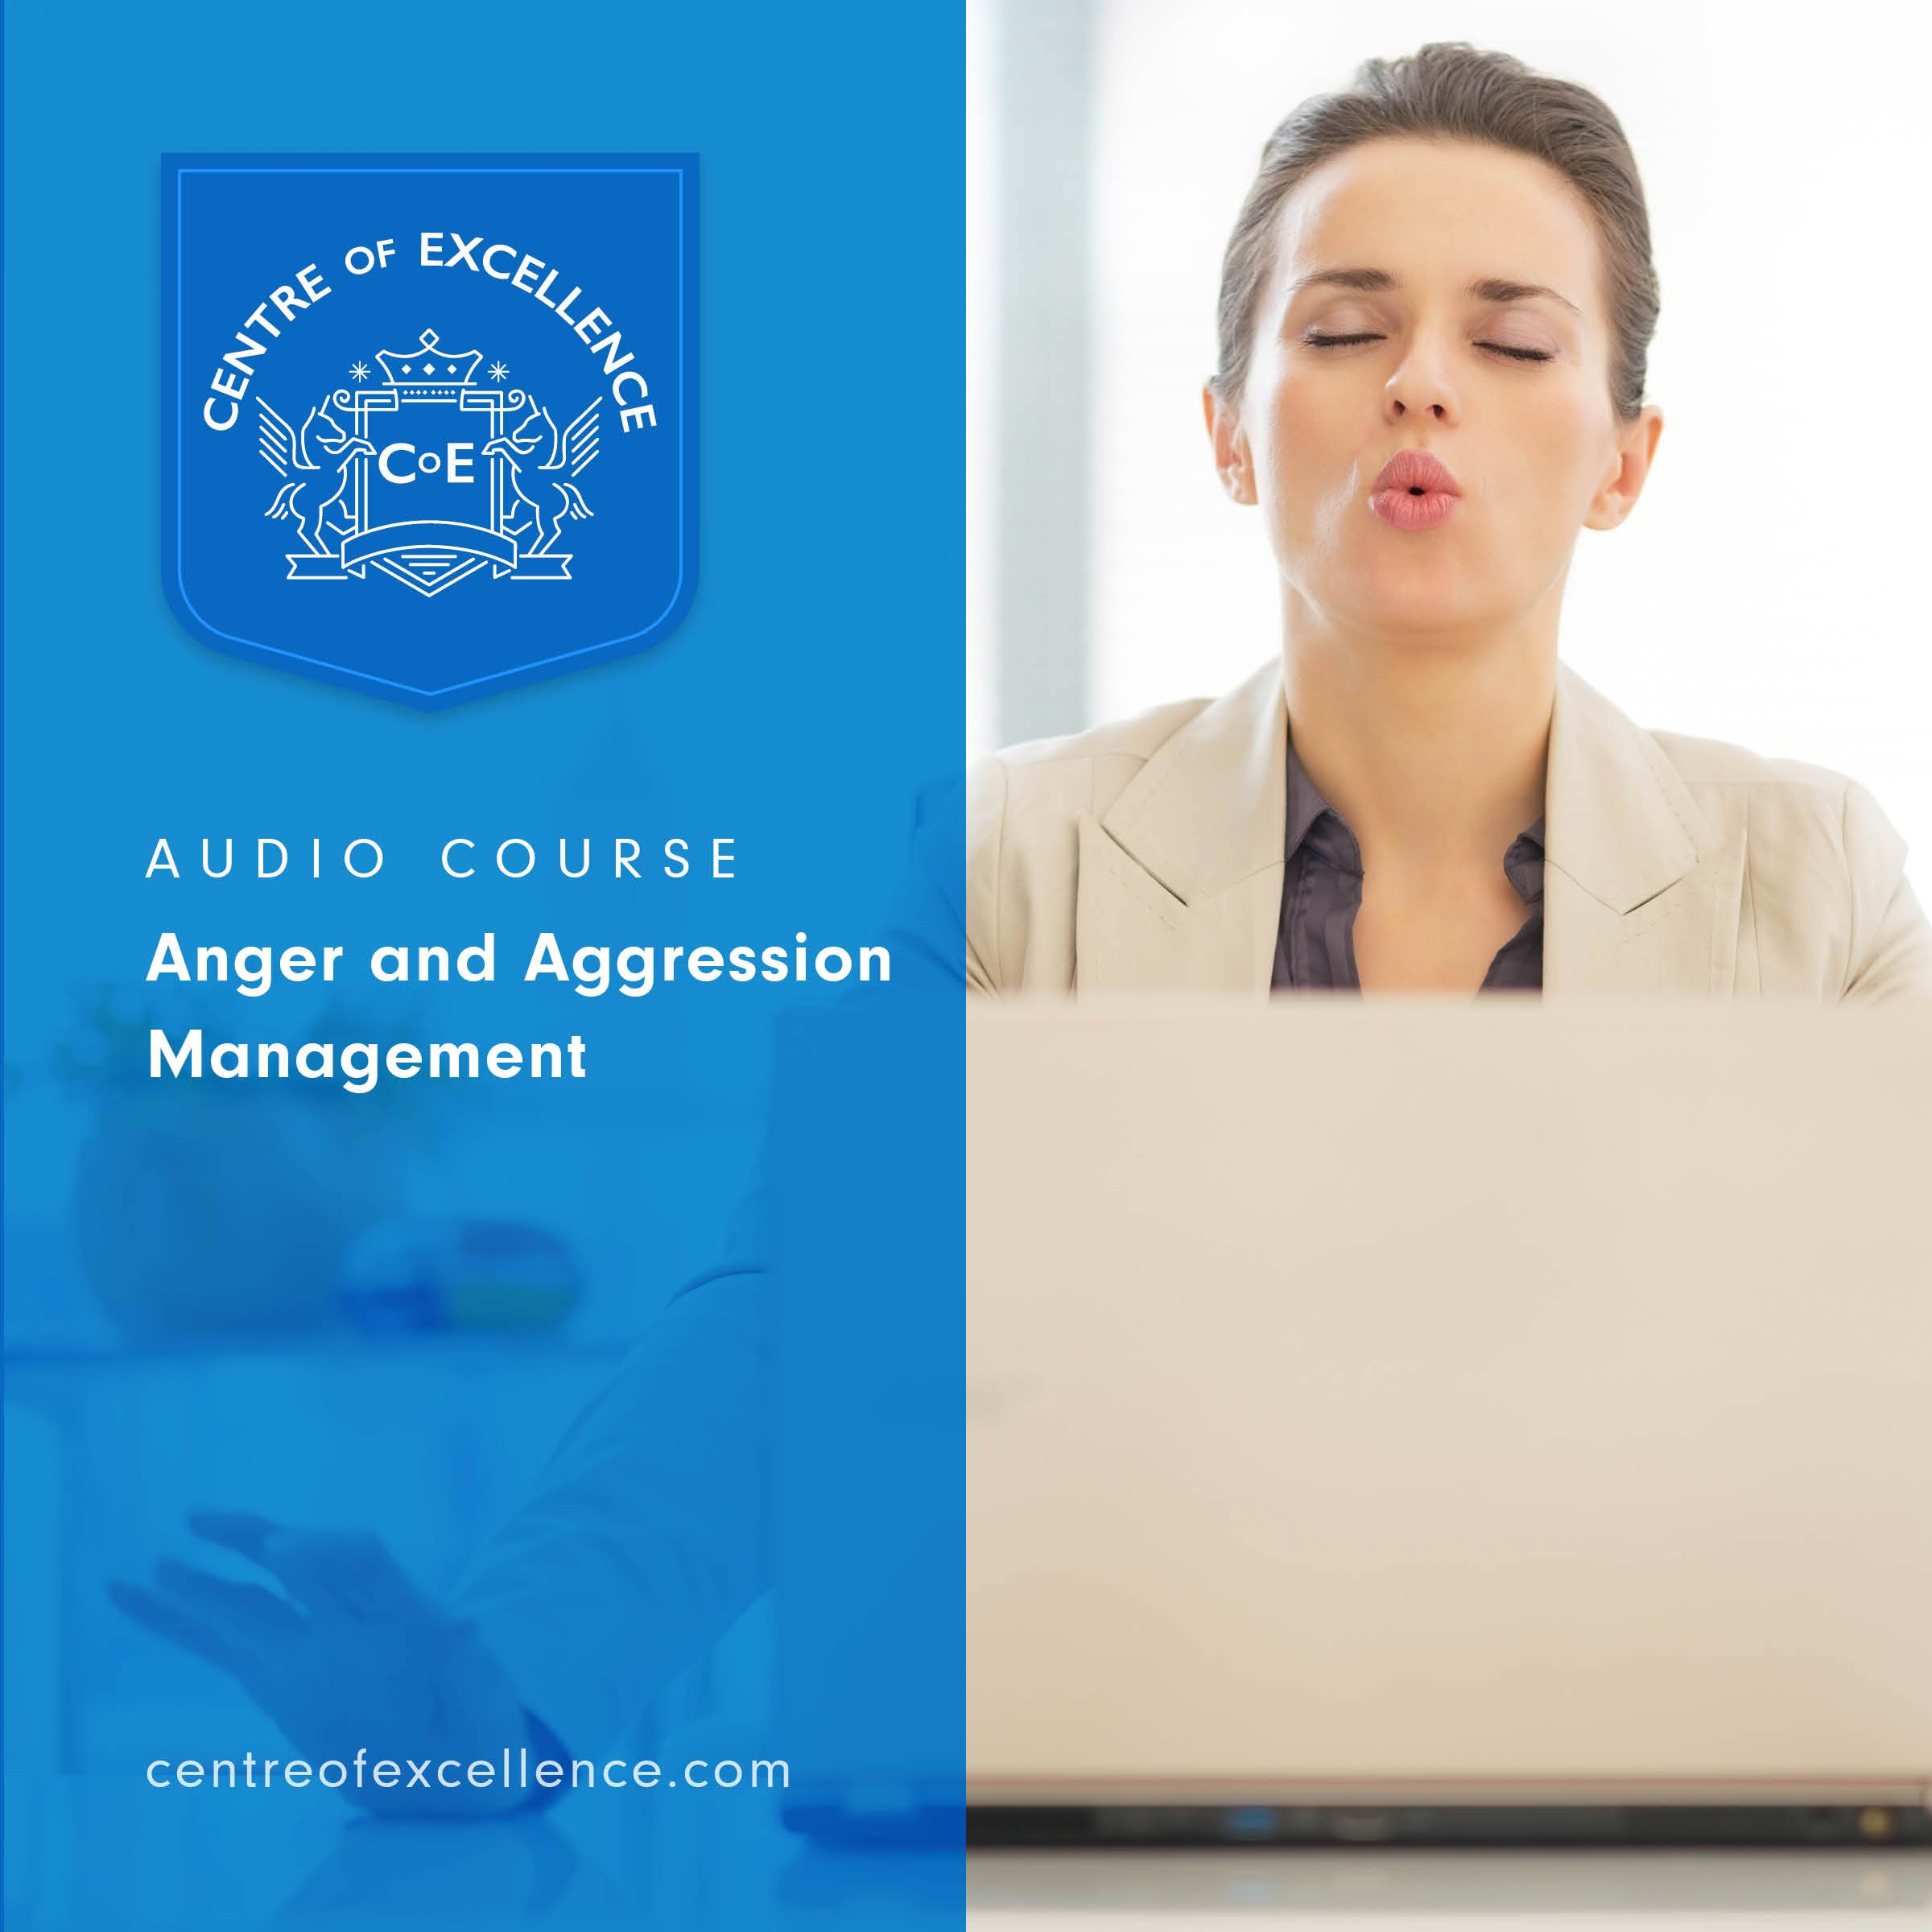 Anger and Aggression Management Audio Course